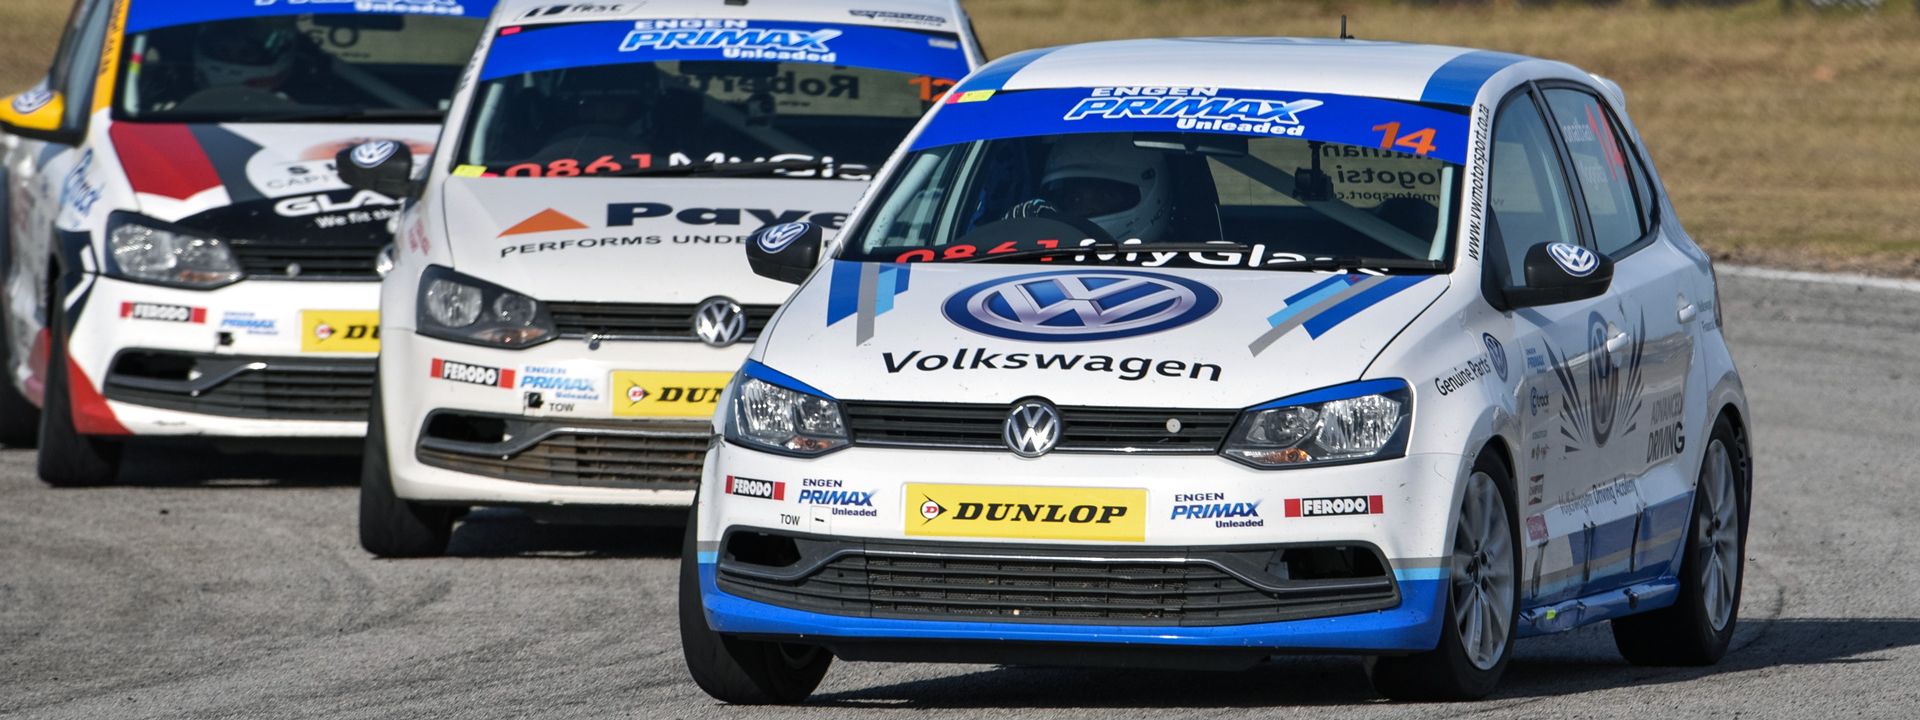 Sasol-Race-Day-brings-Extreme-Festival-Spectacle-to-Zwartkops-Raceway